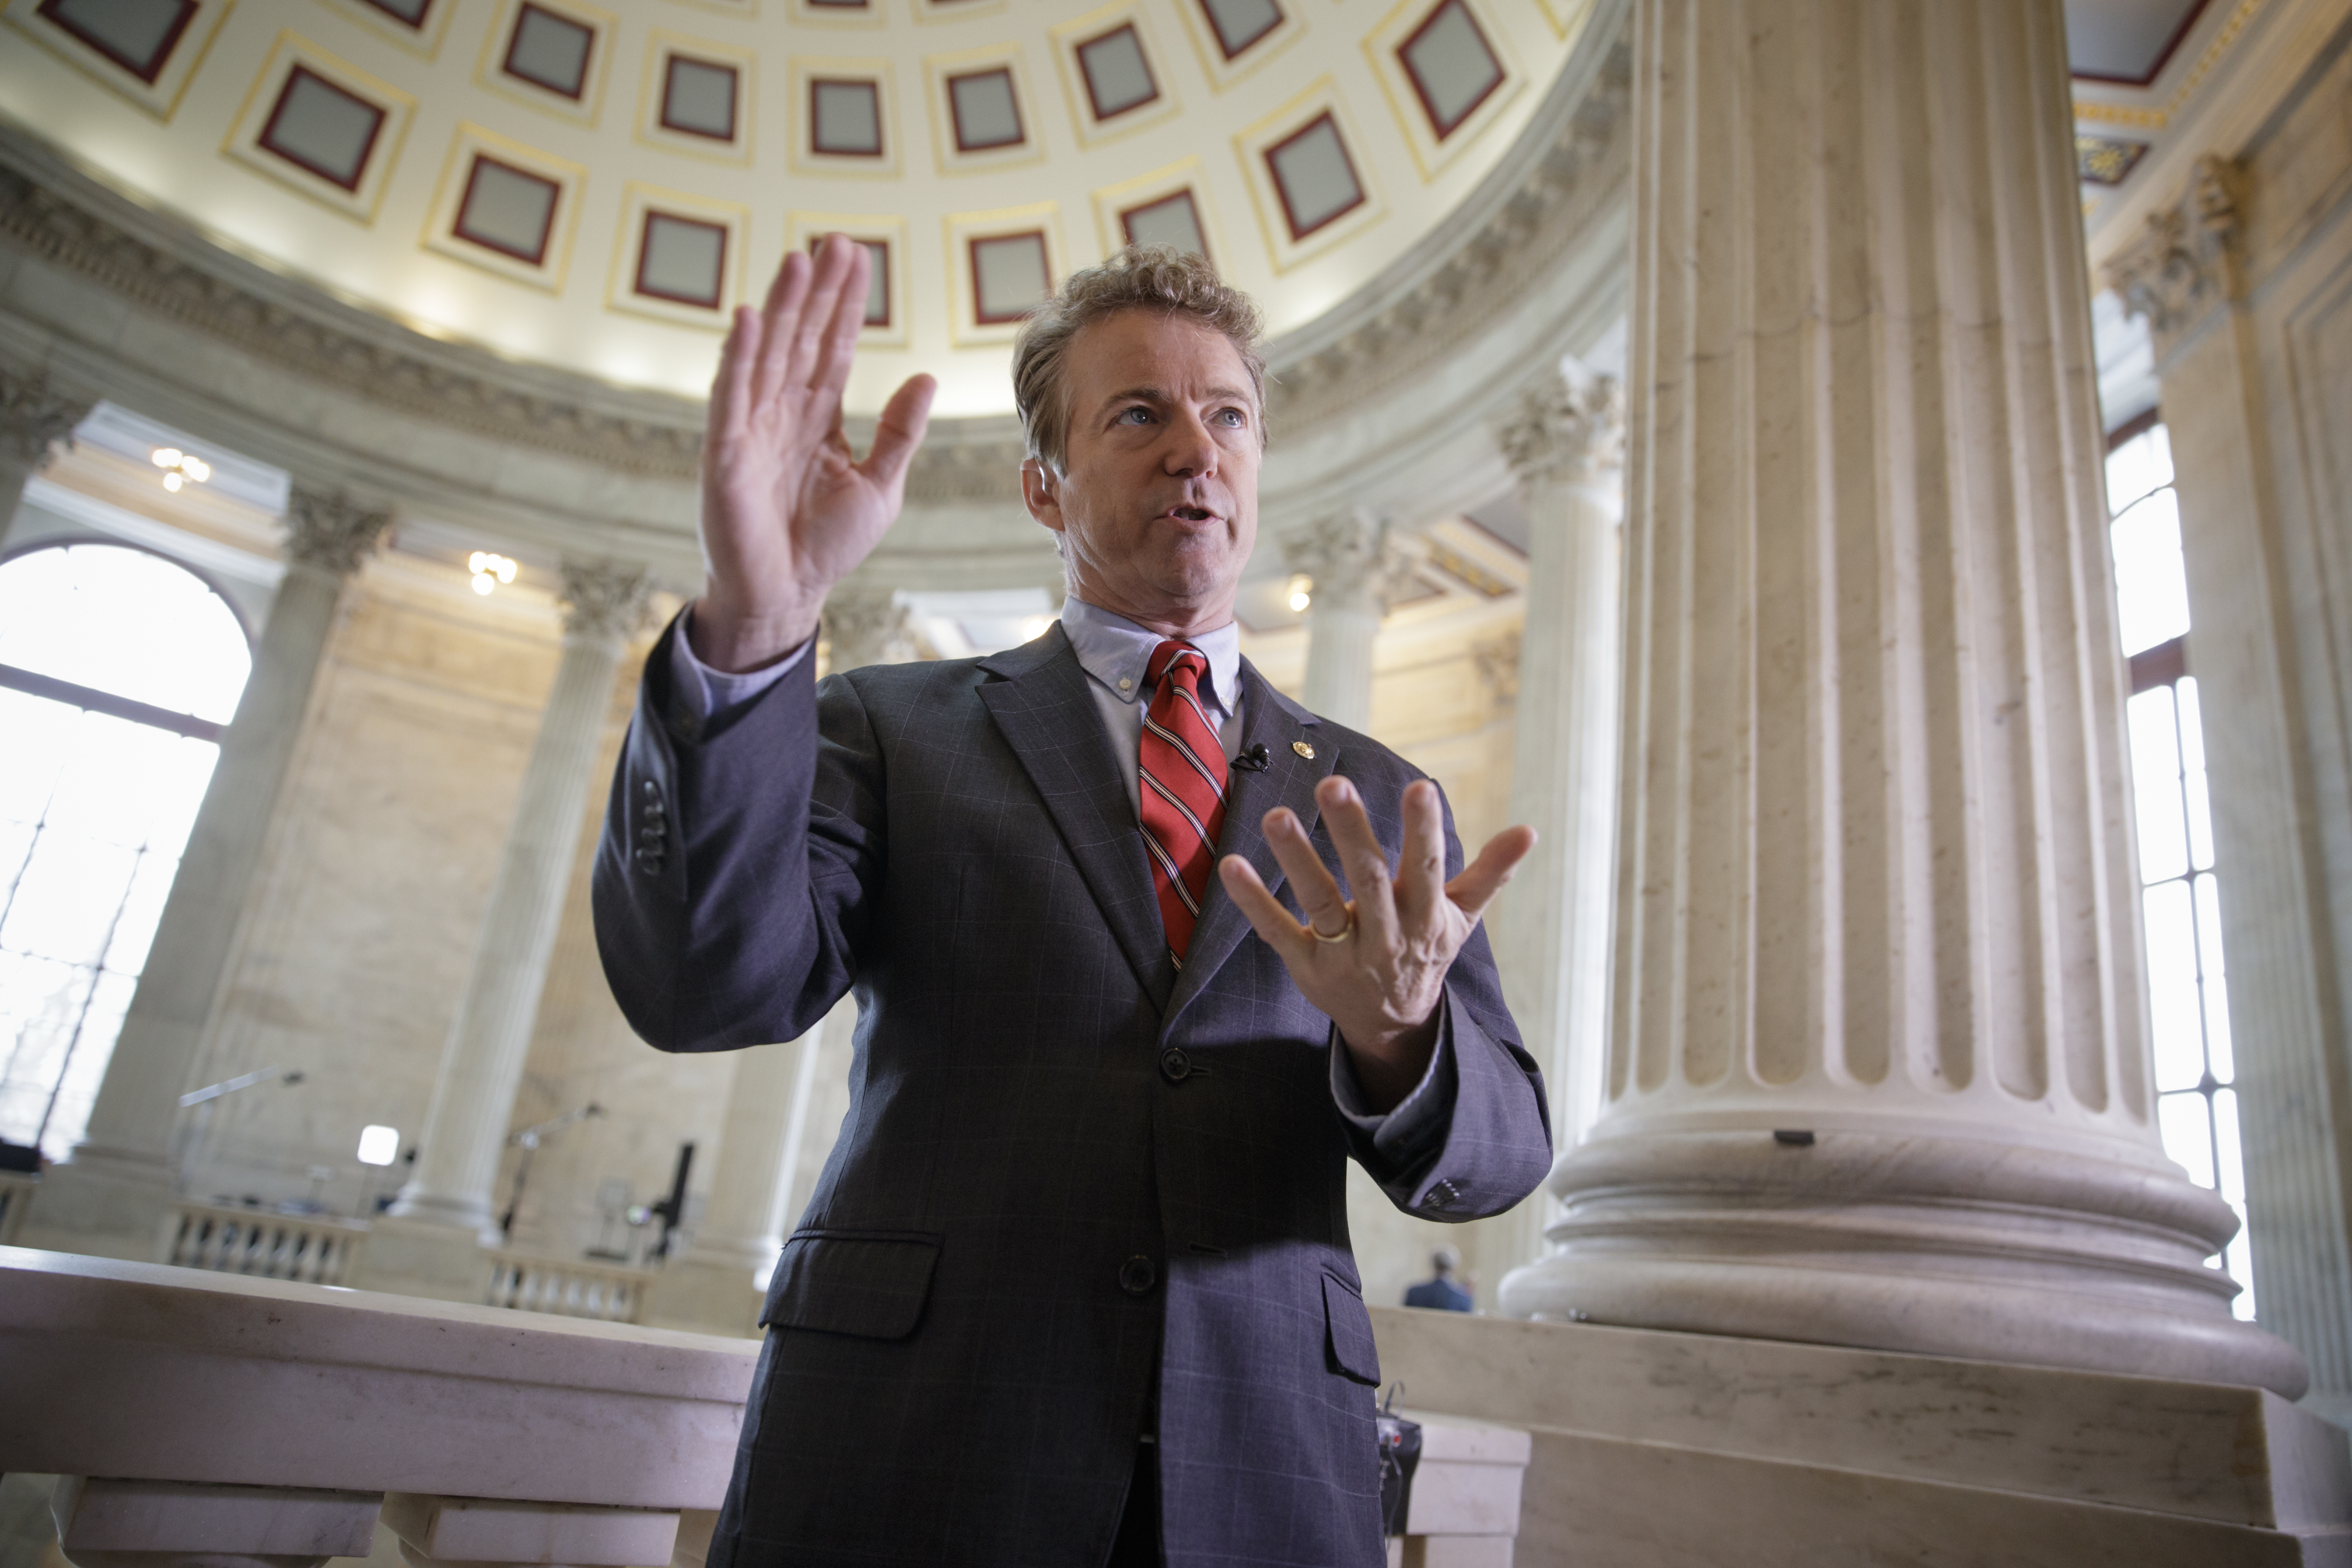 Sen. Rand Paul, R-Ky., an opponent of the House Republican healthcare reform plan, discusses the bill before a TV interview on Capitol Hill in Washington, Wednesday, March, 15, 2017.